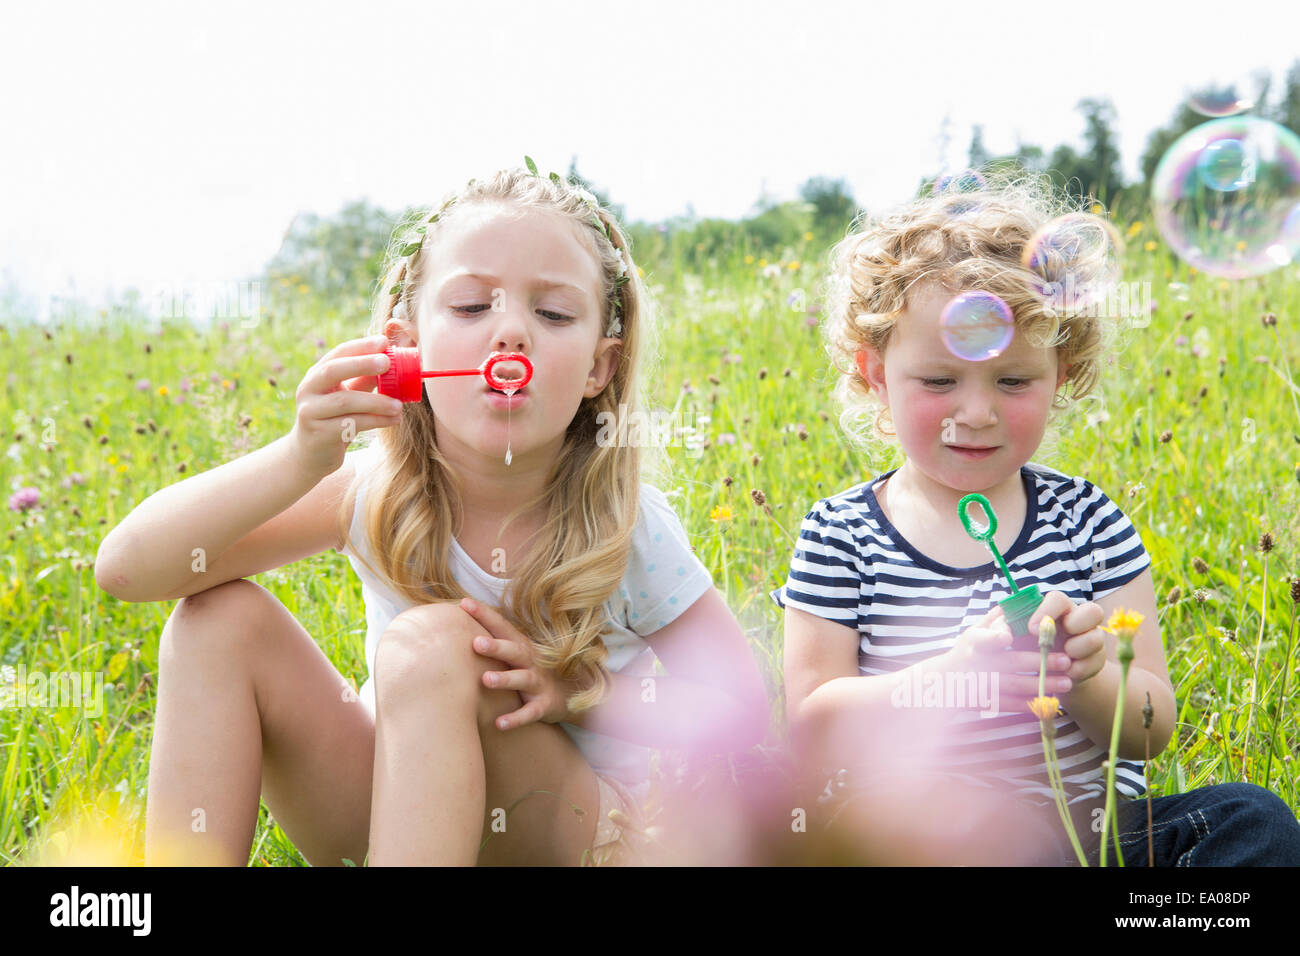 Two girls blowing bubbles - Stock Image